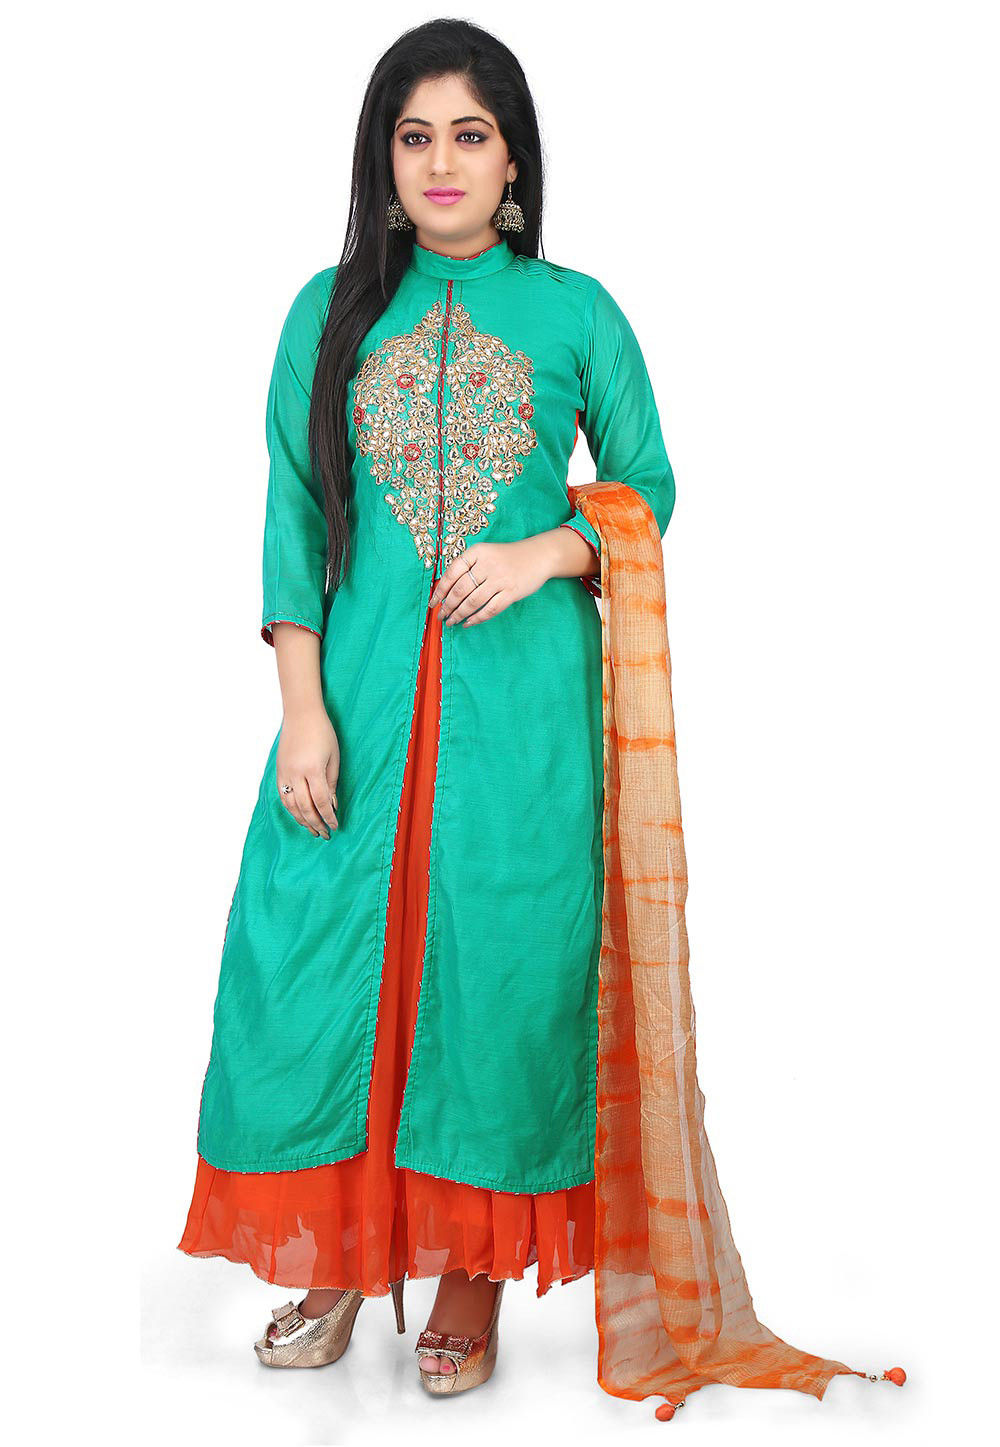 Gota Patti Chanderi Abaya Style Suit in Teal Green and Orange